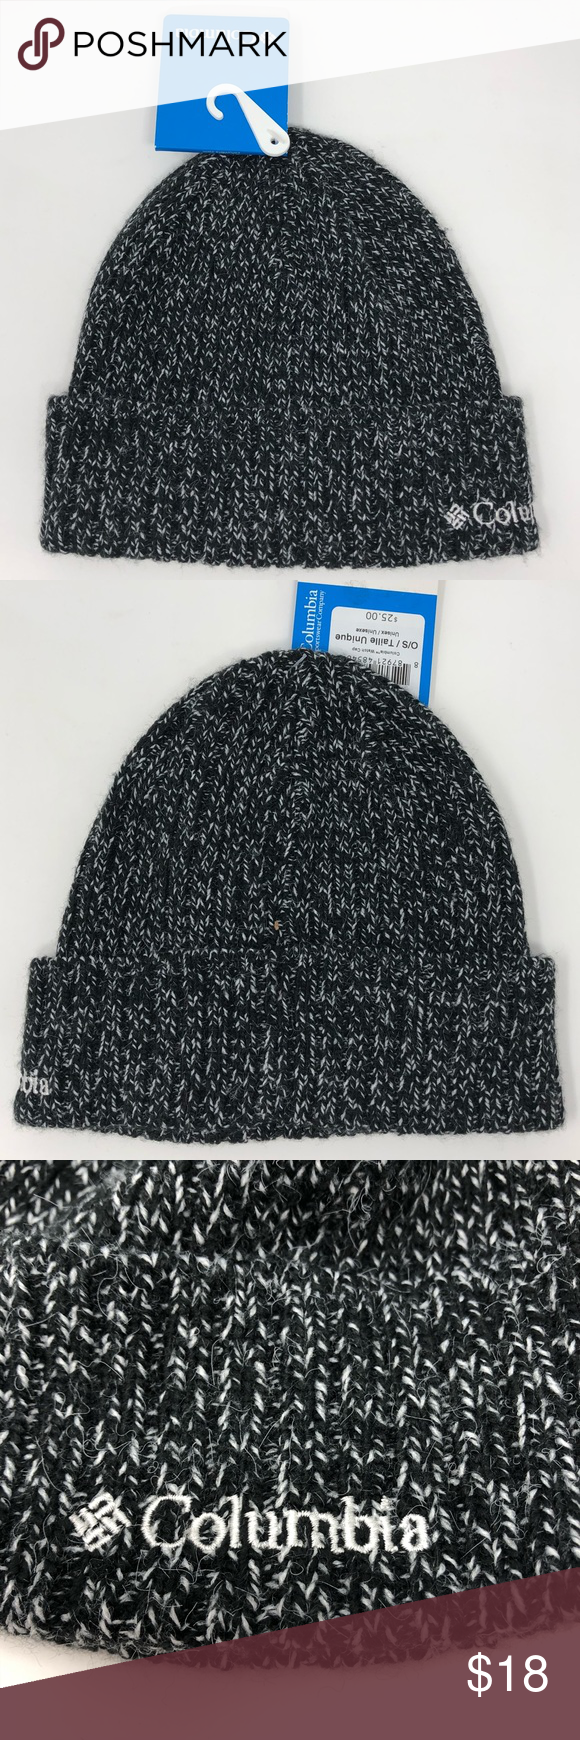 NWT Columbia Watch Cap Marled Knit Unisex Hat New with tags Columbia  Sportswear Watch Cap Knit f167936bbe9